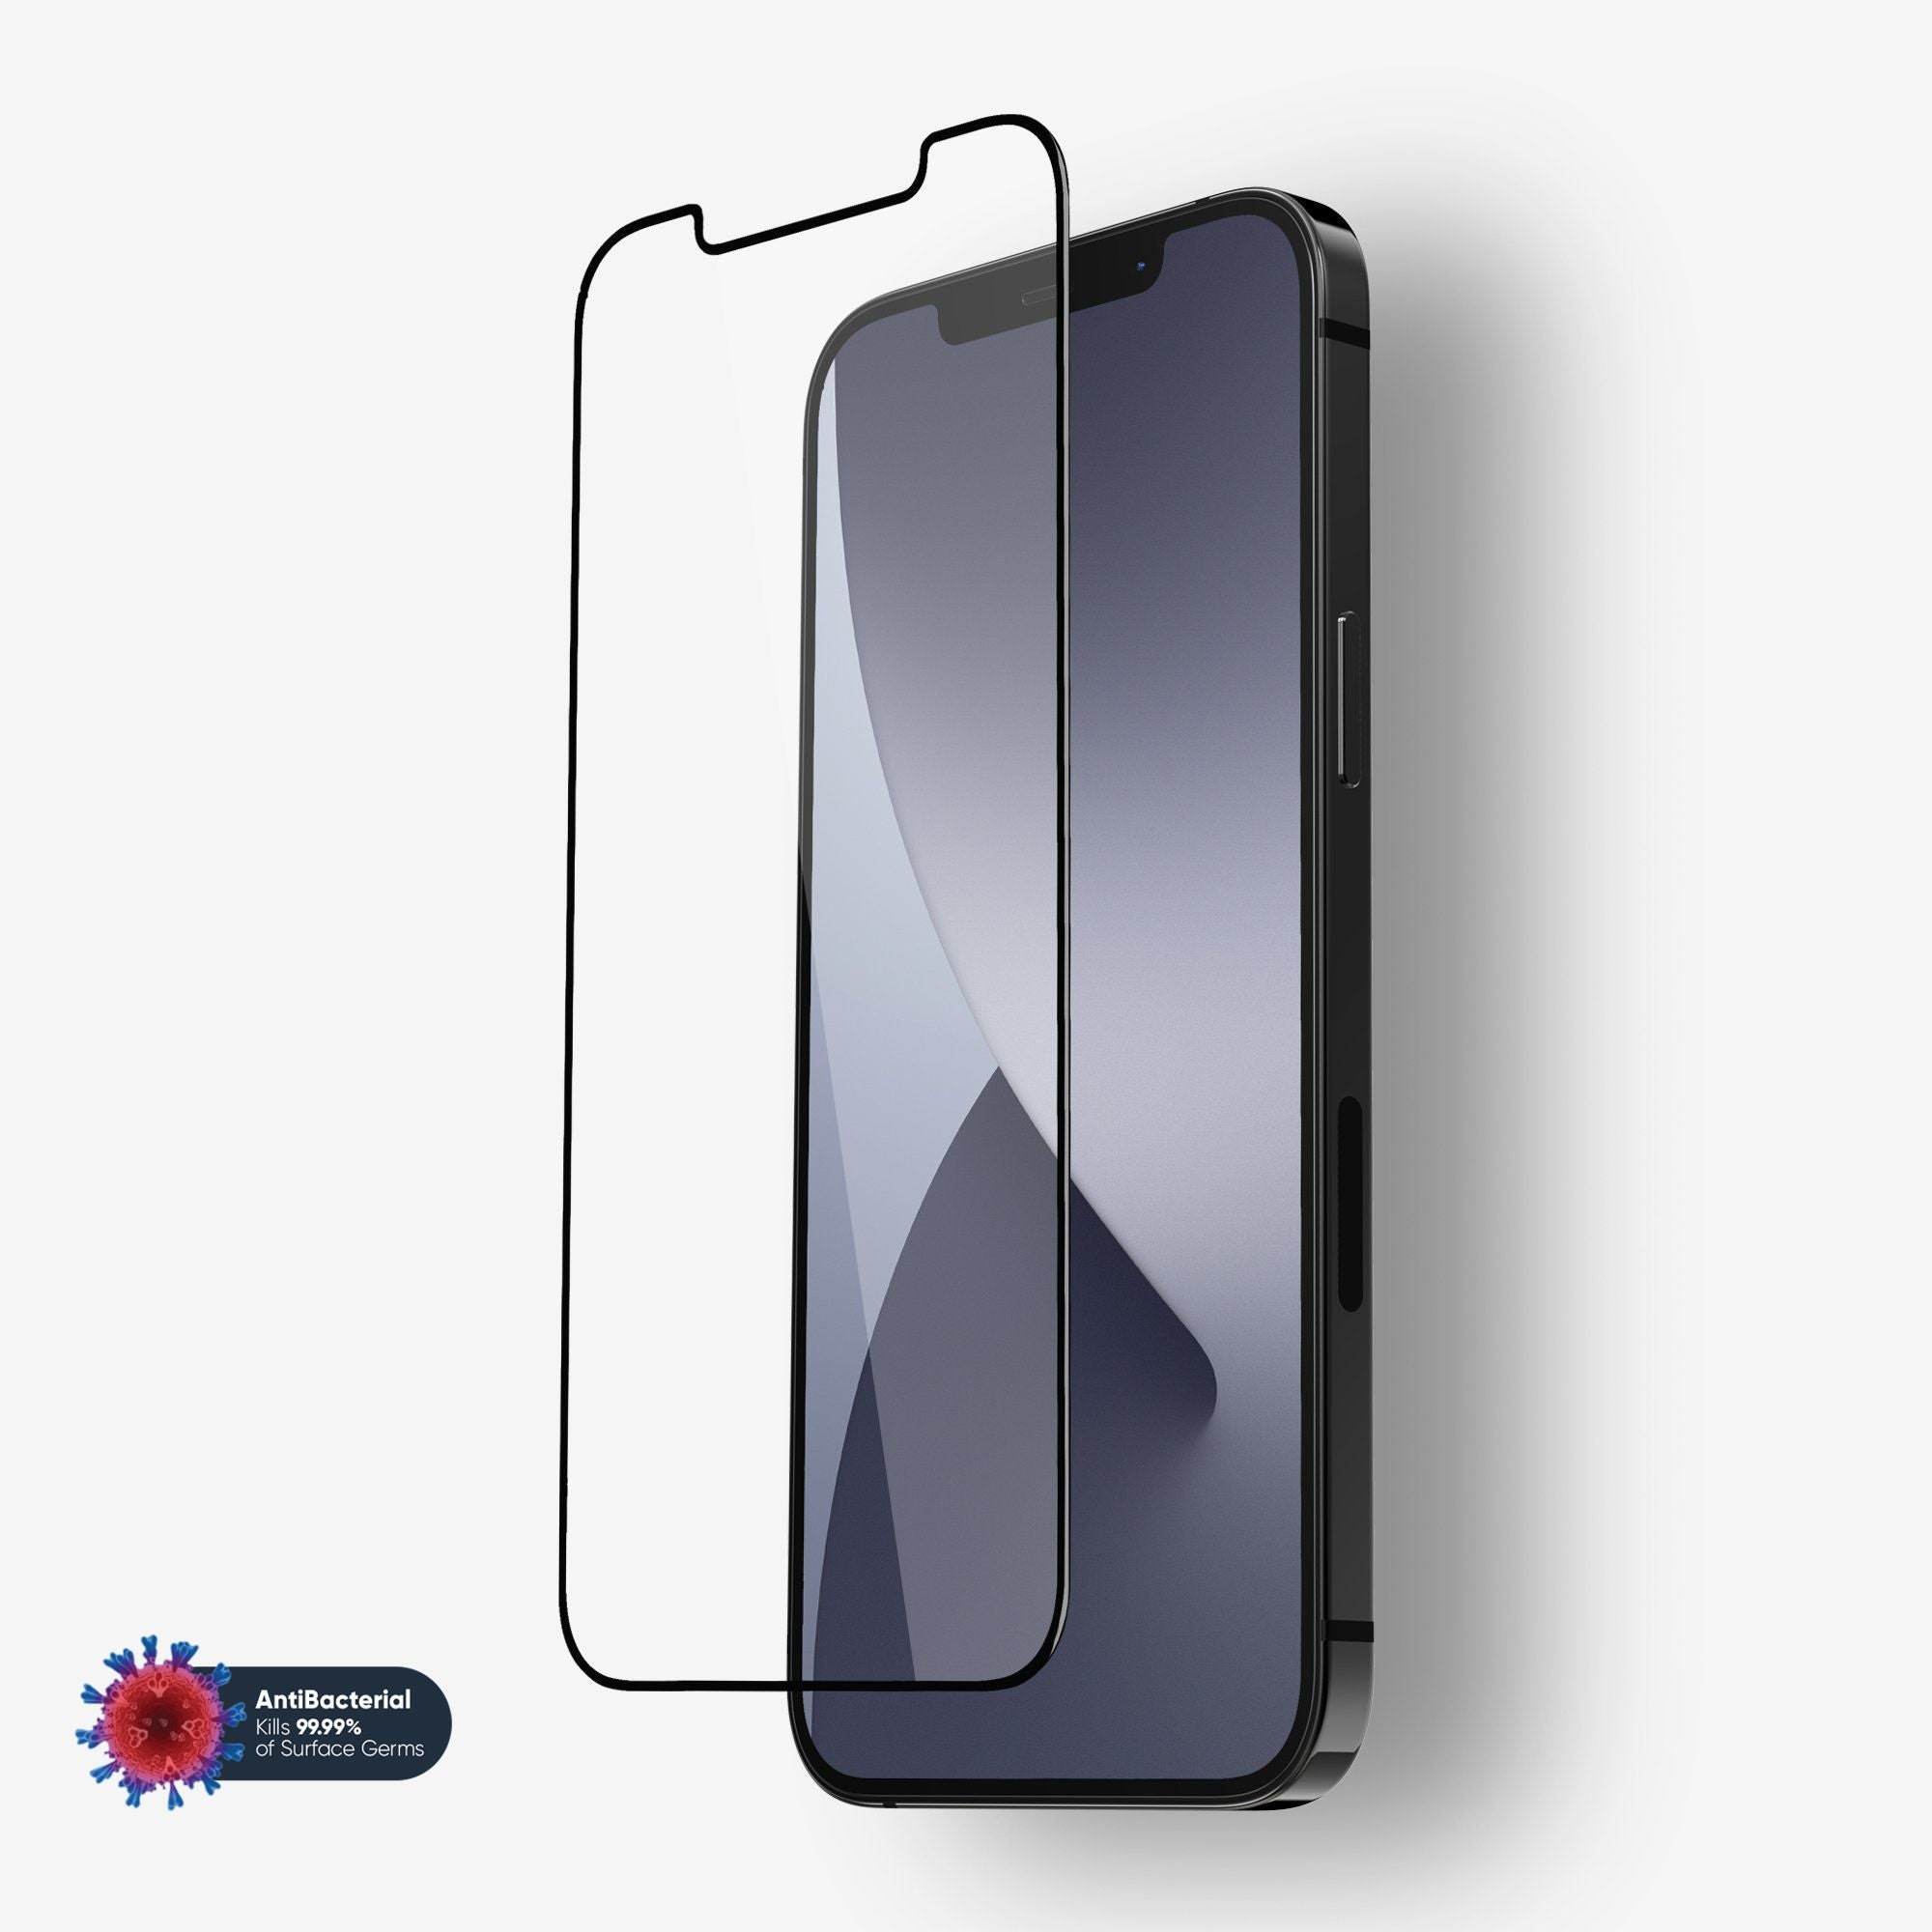 NanoArmour Anti-Microbial Best Screen Protector iPhone 12 Pro Max